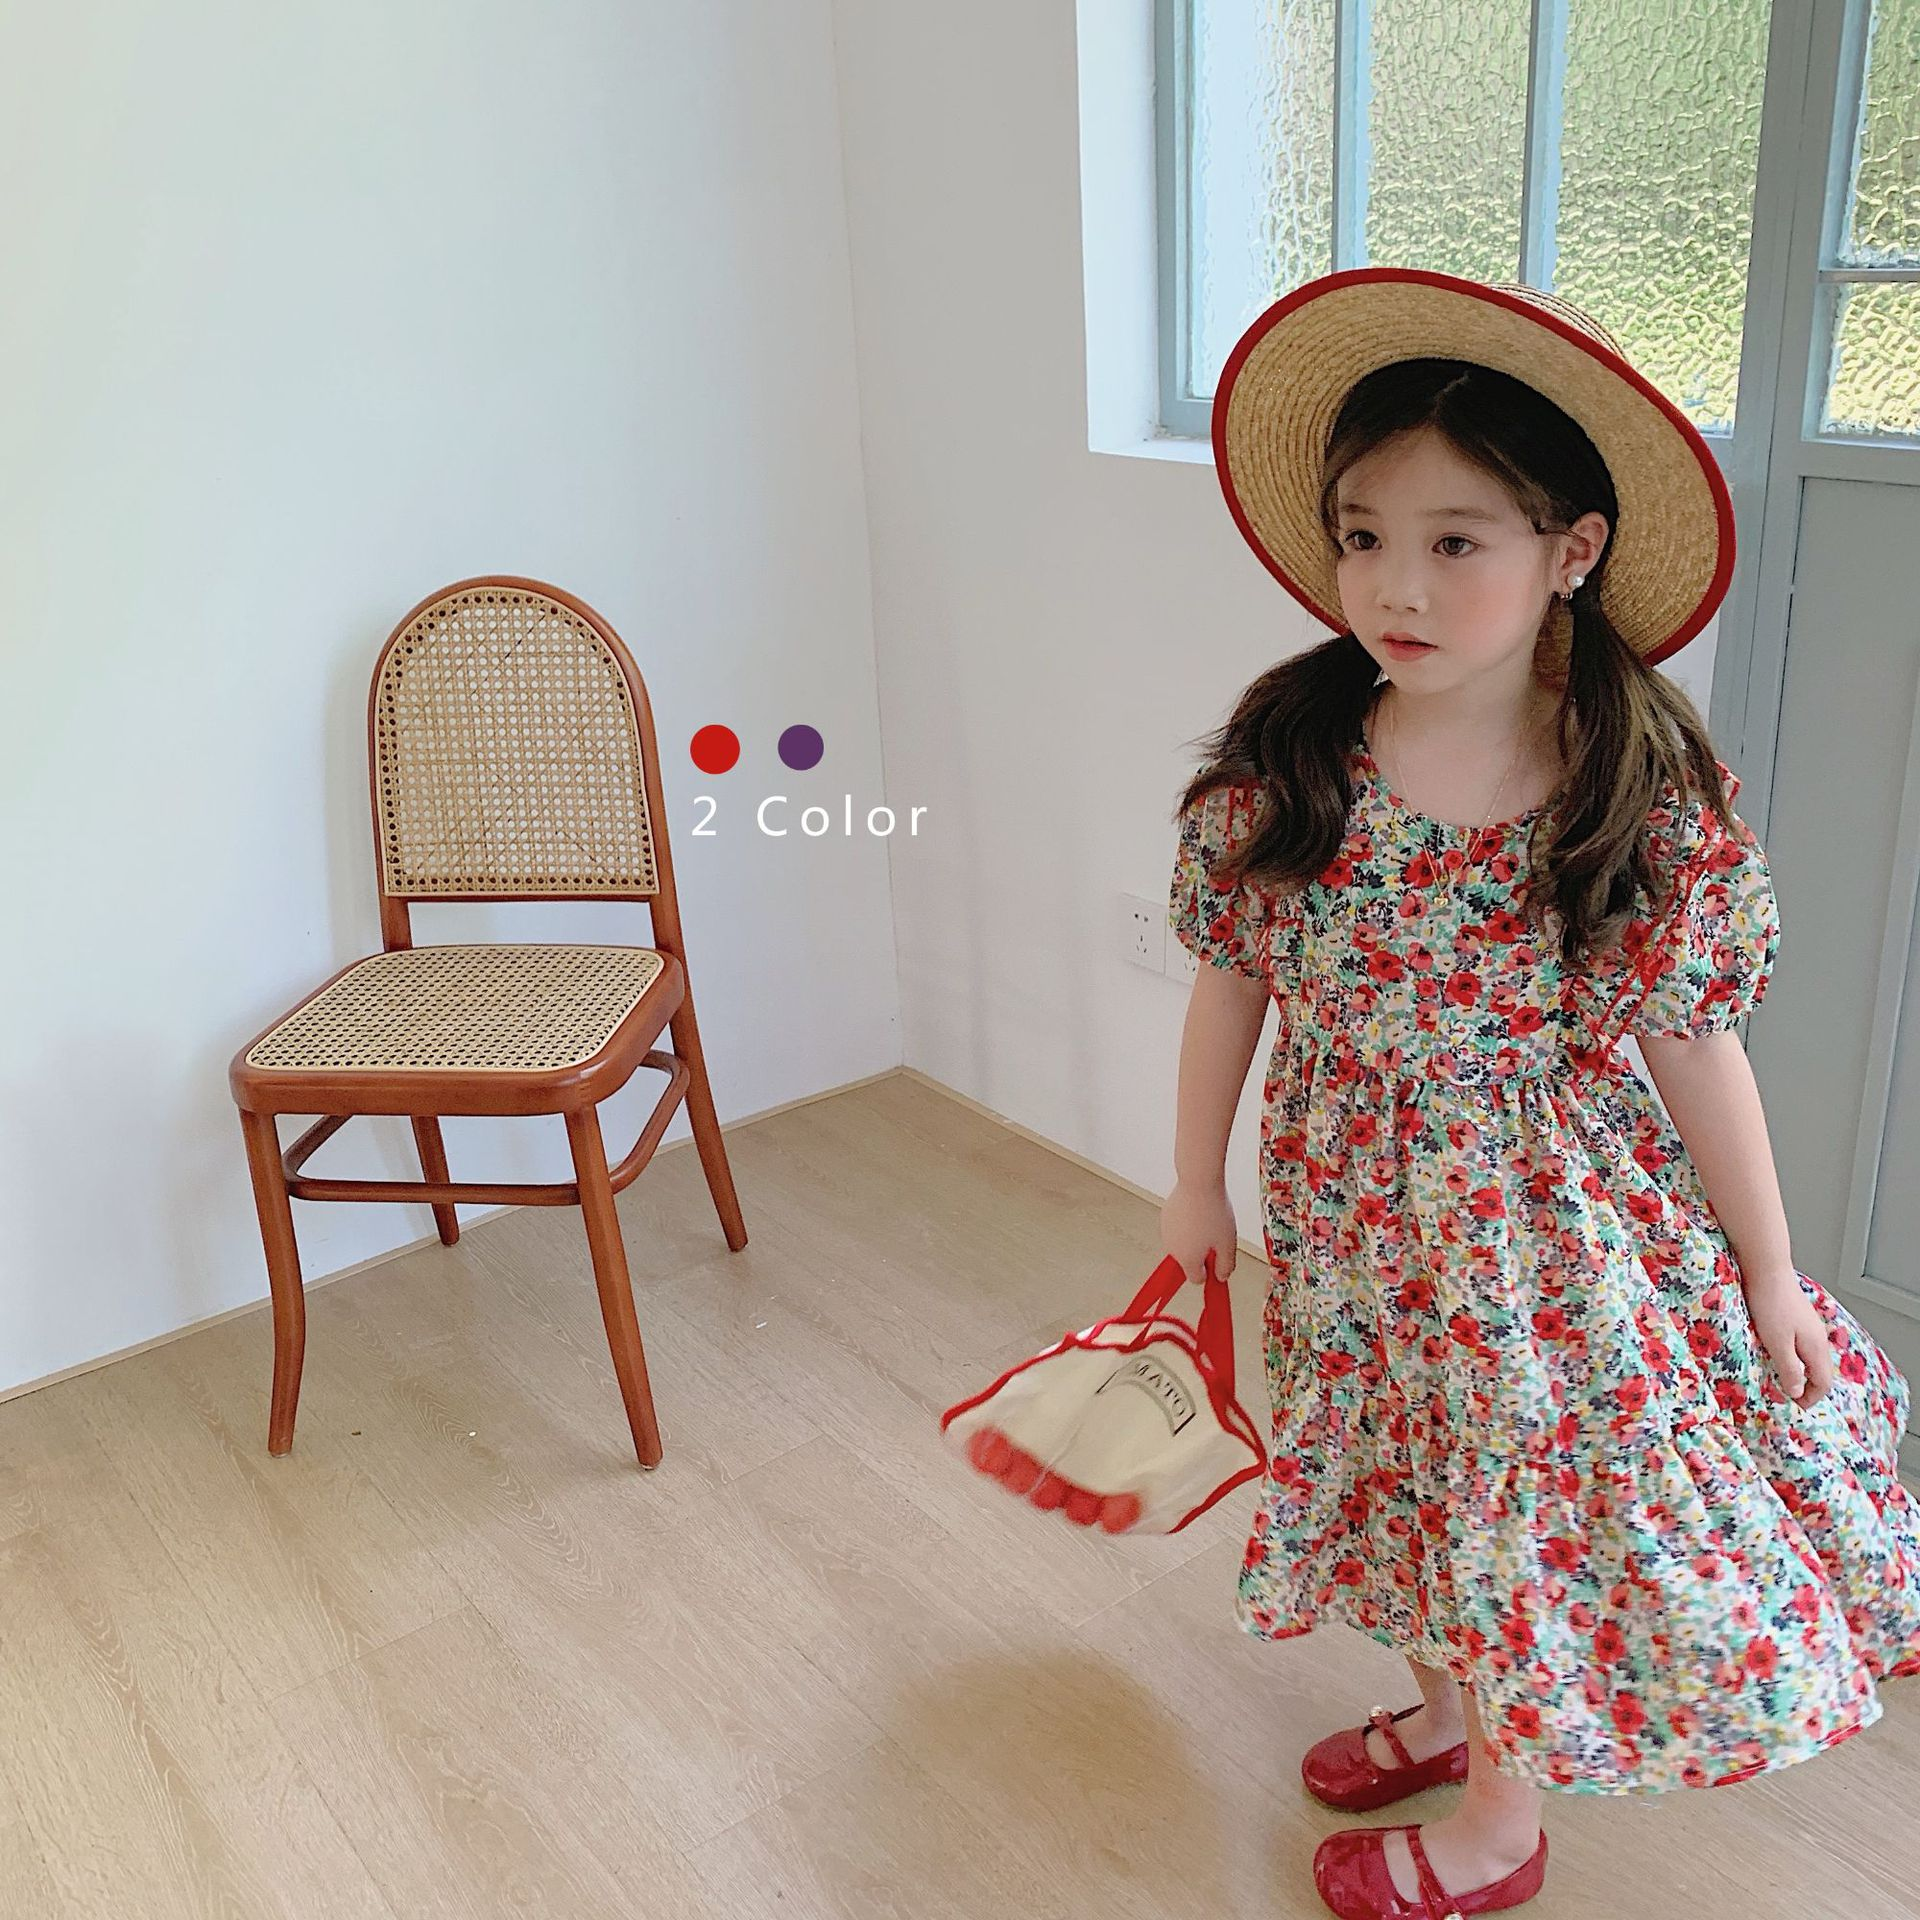 3744 2-color Floral Ribbon Dress 2020 Summer Baby Girls 10 Years Dresses Romantic Ruffle Sleeveless Dress Children Dress